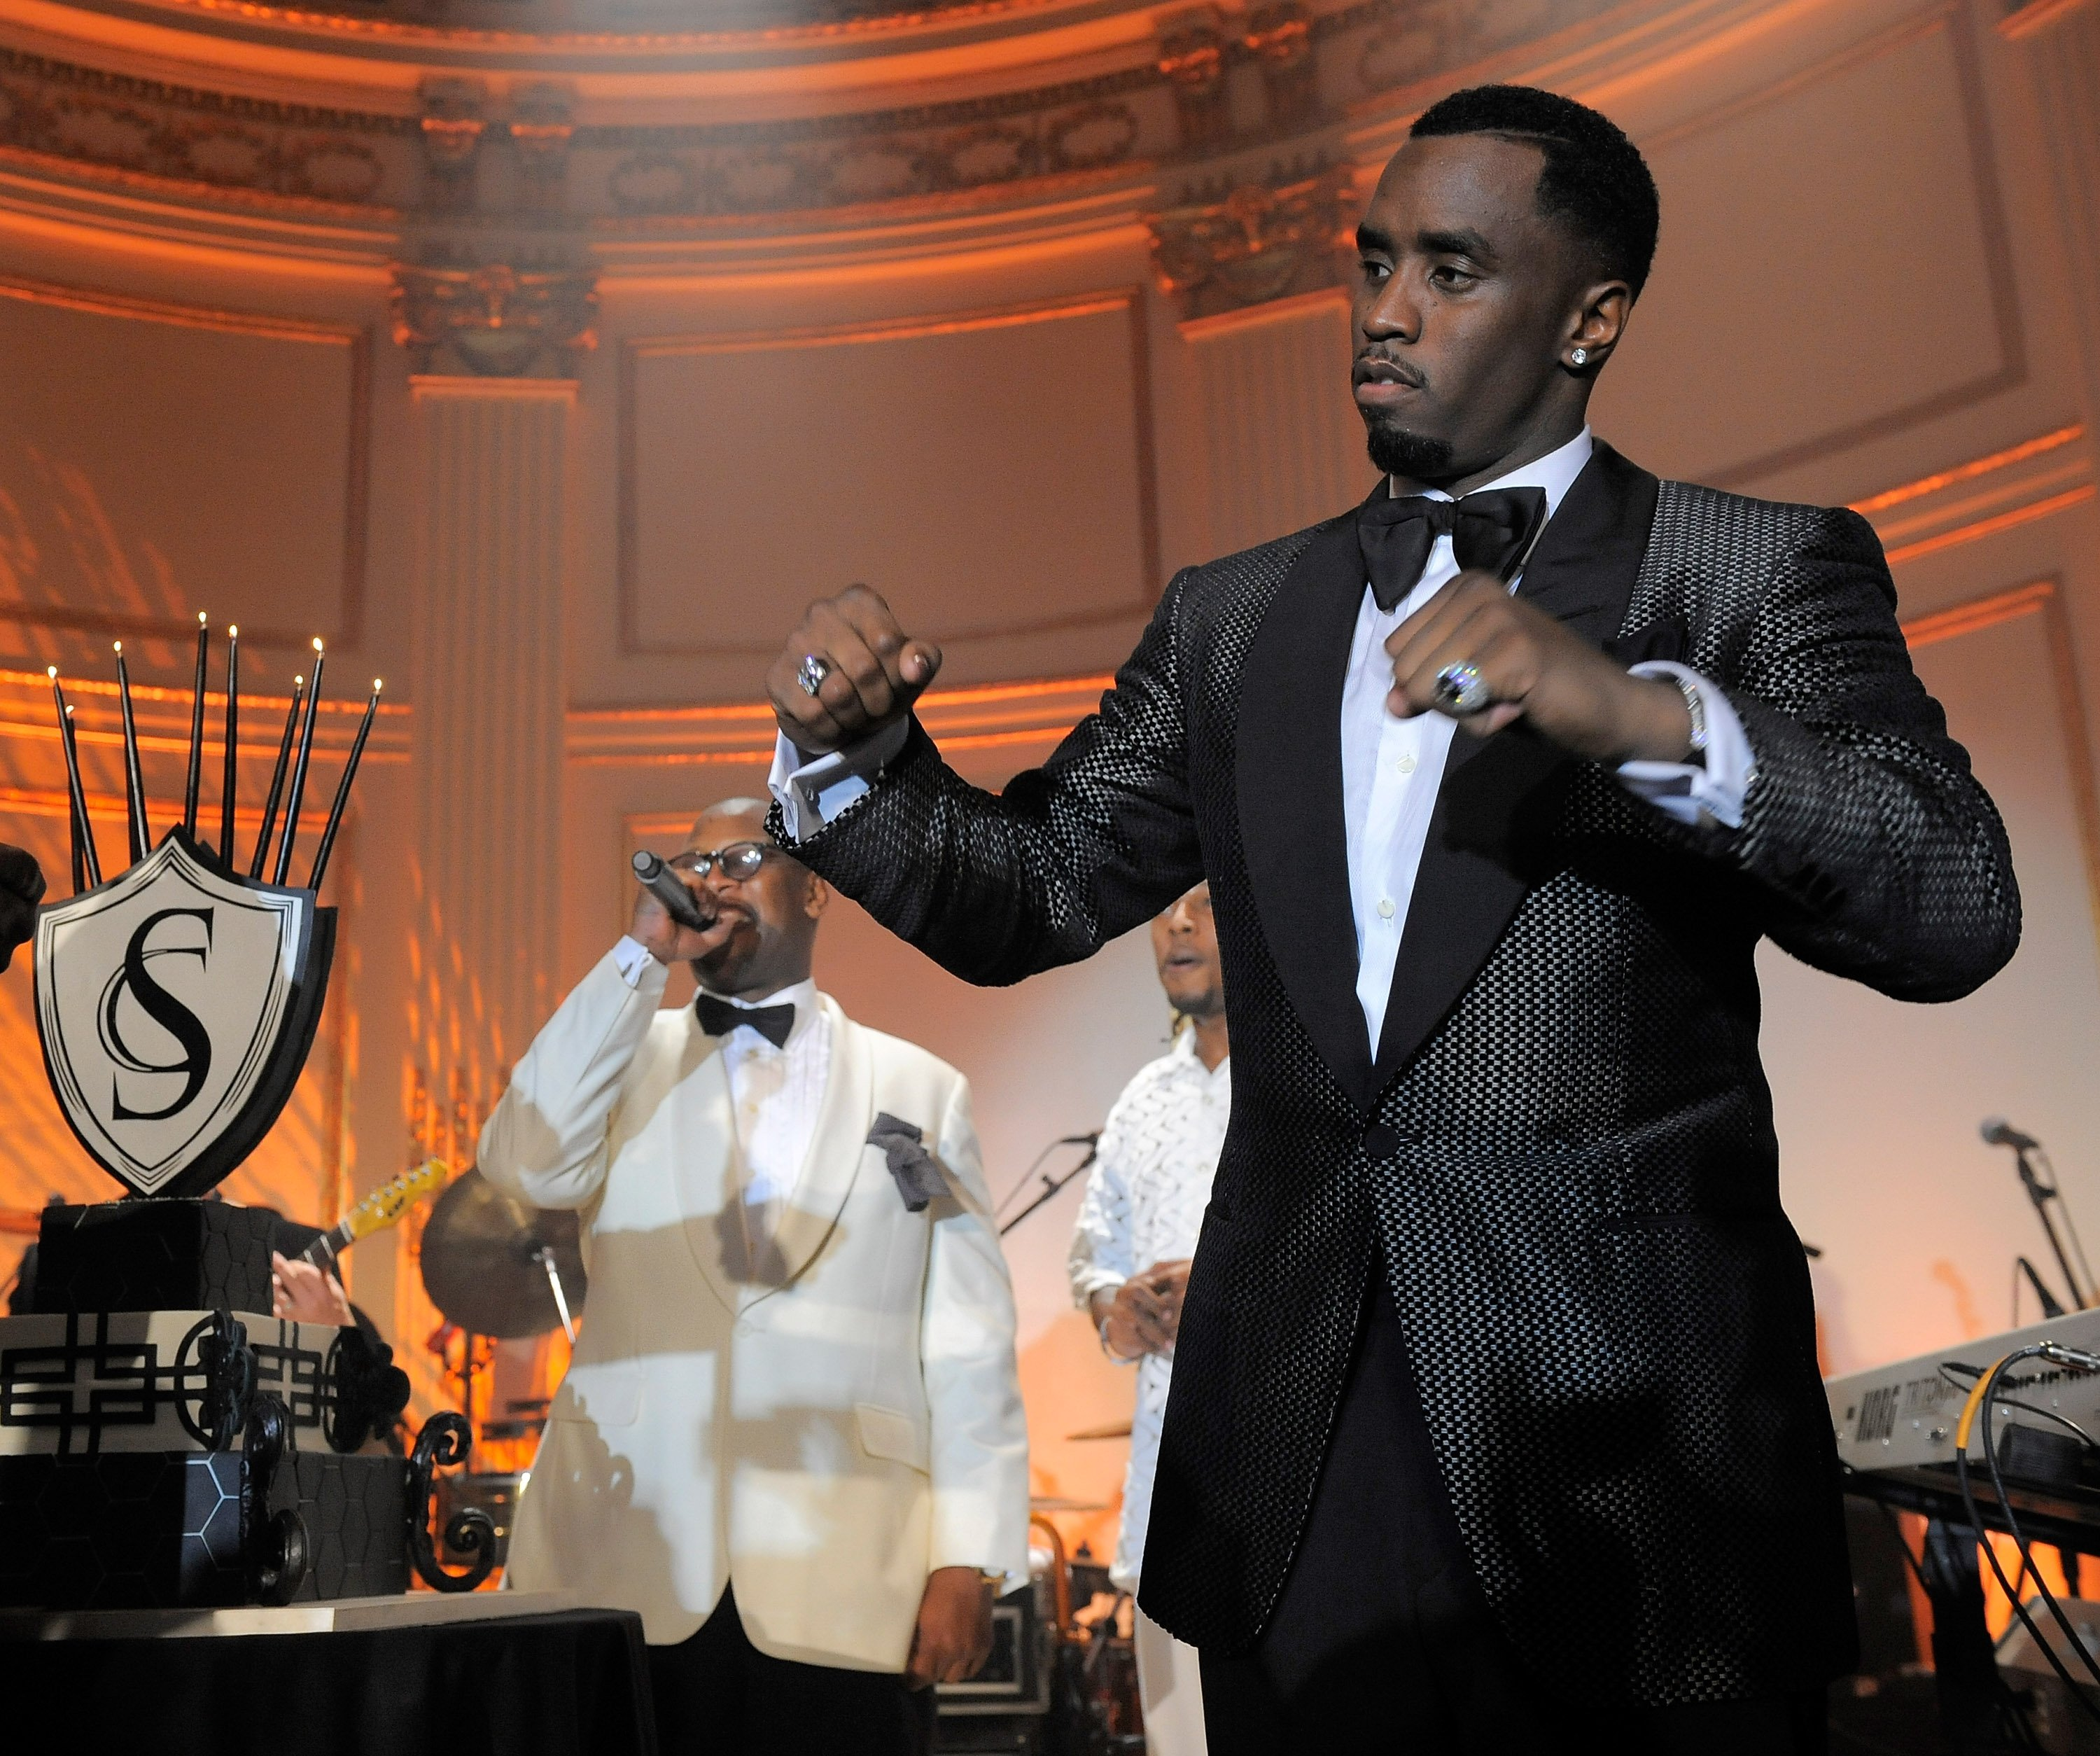 Diddy enjoying the moment at his celebration celebration held at The Plaza Hotel in New York, November 20, 2009. | Photo: Getty Images.